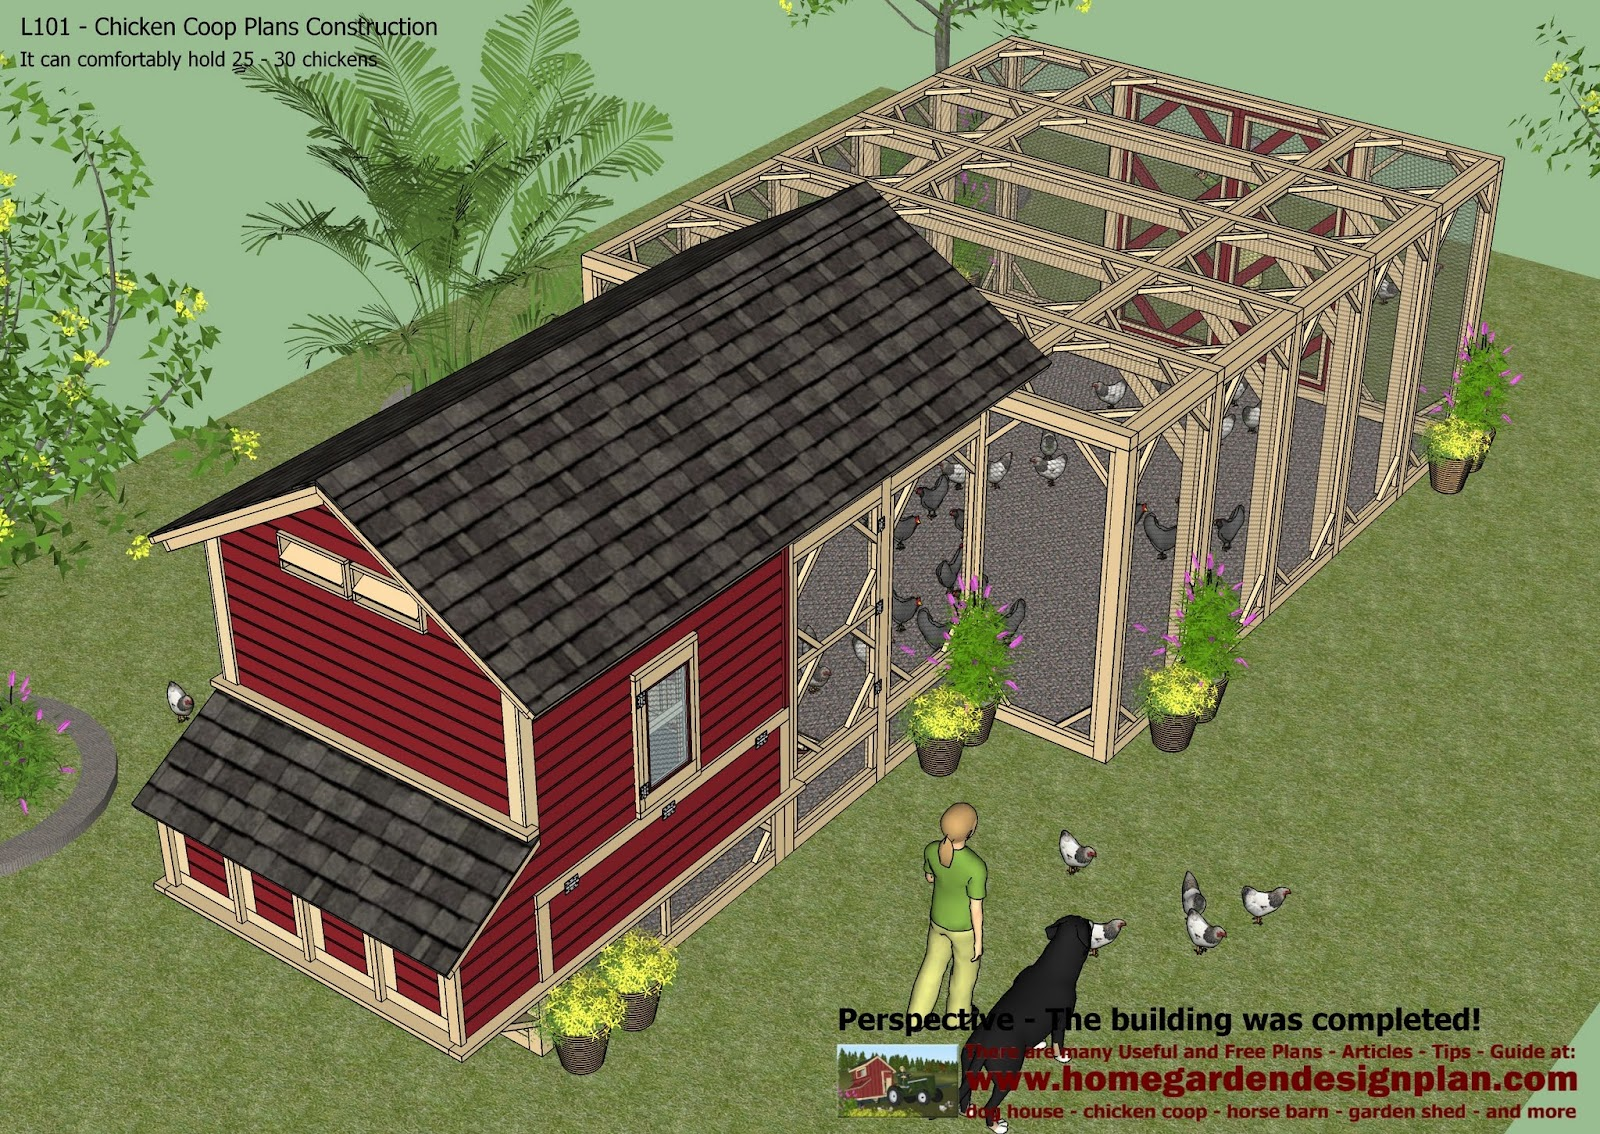 Chicken Coop Plans Construction - Chicken Coop Design - How To Build ...